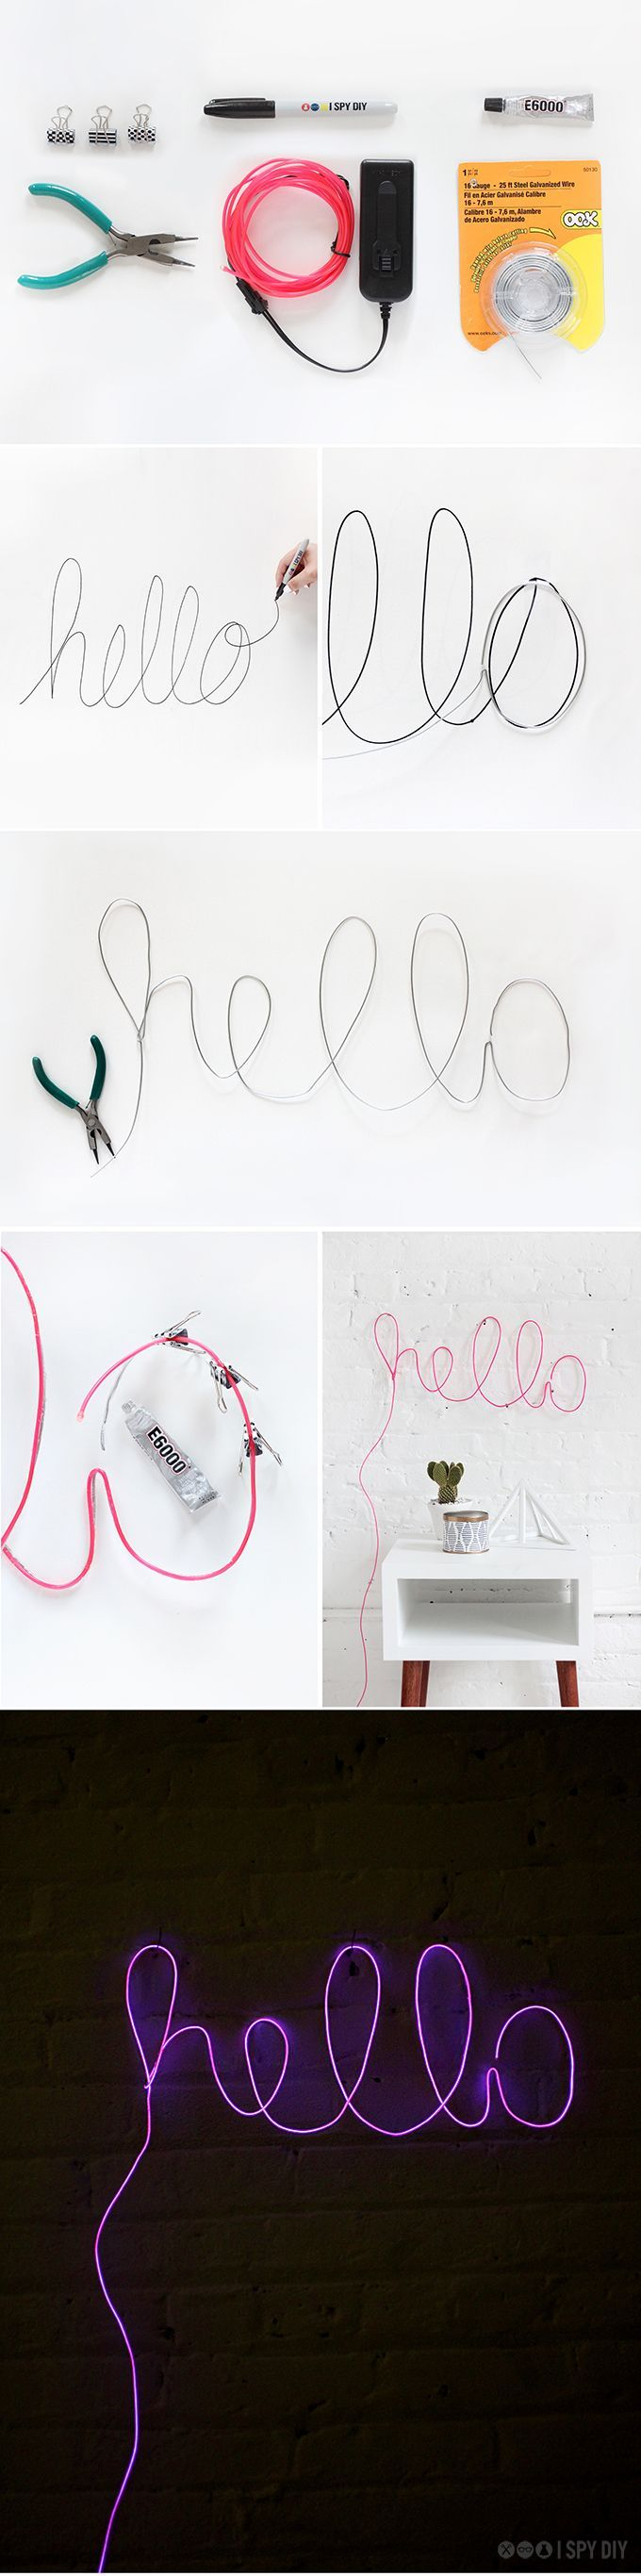 Art & design; Do-it-yourself neon signs l tolle Neon Schrift Lampe selber machen